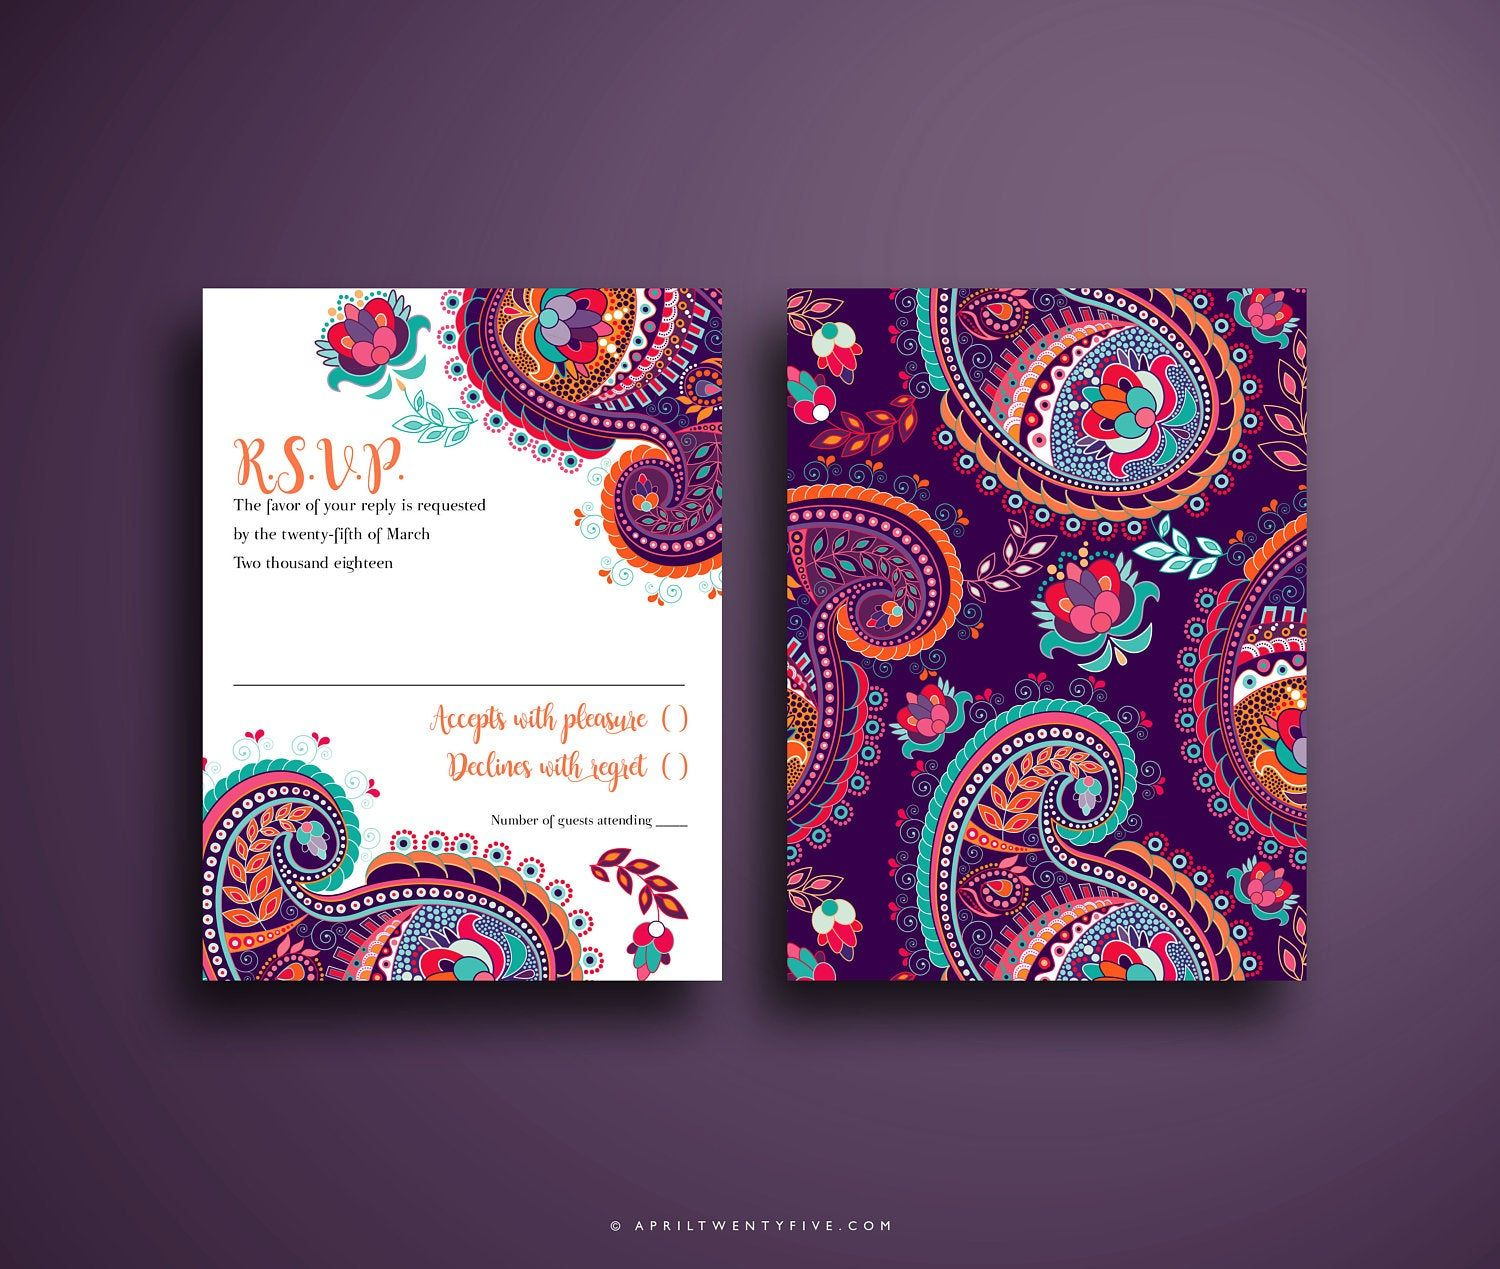 Indian Wedding Invitation Colorful and Festive Pink Purple   Etsy in 2020   Indian  wedding invitations, Printable wedding invitations vintage, Colorful  invitations